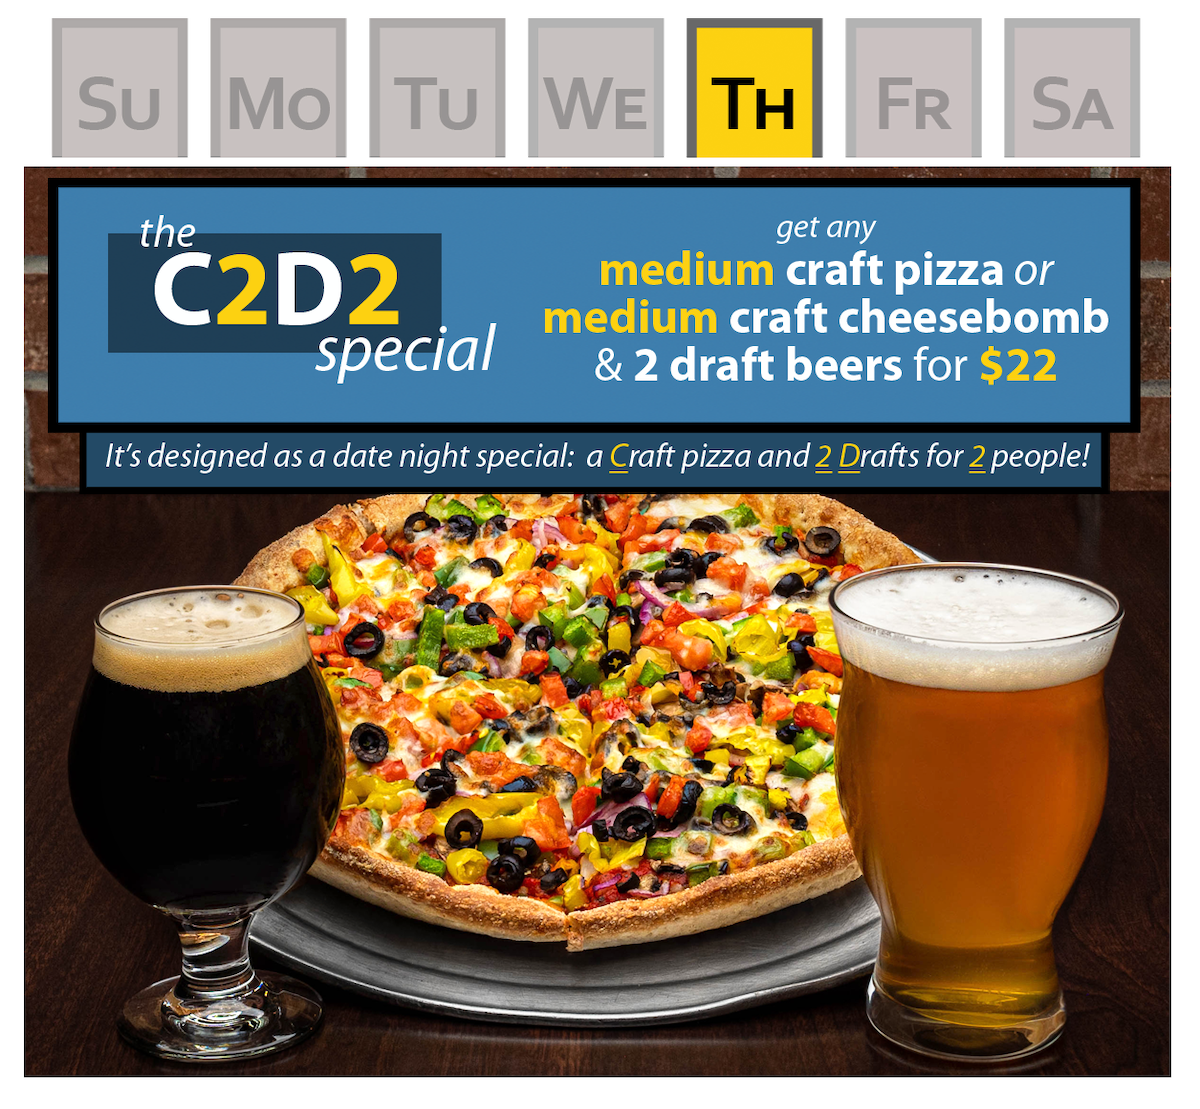 speical containing a medium craft pizza and two draft beers